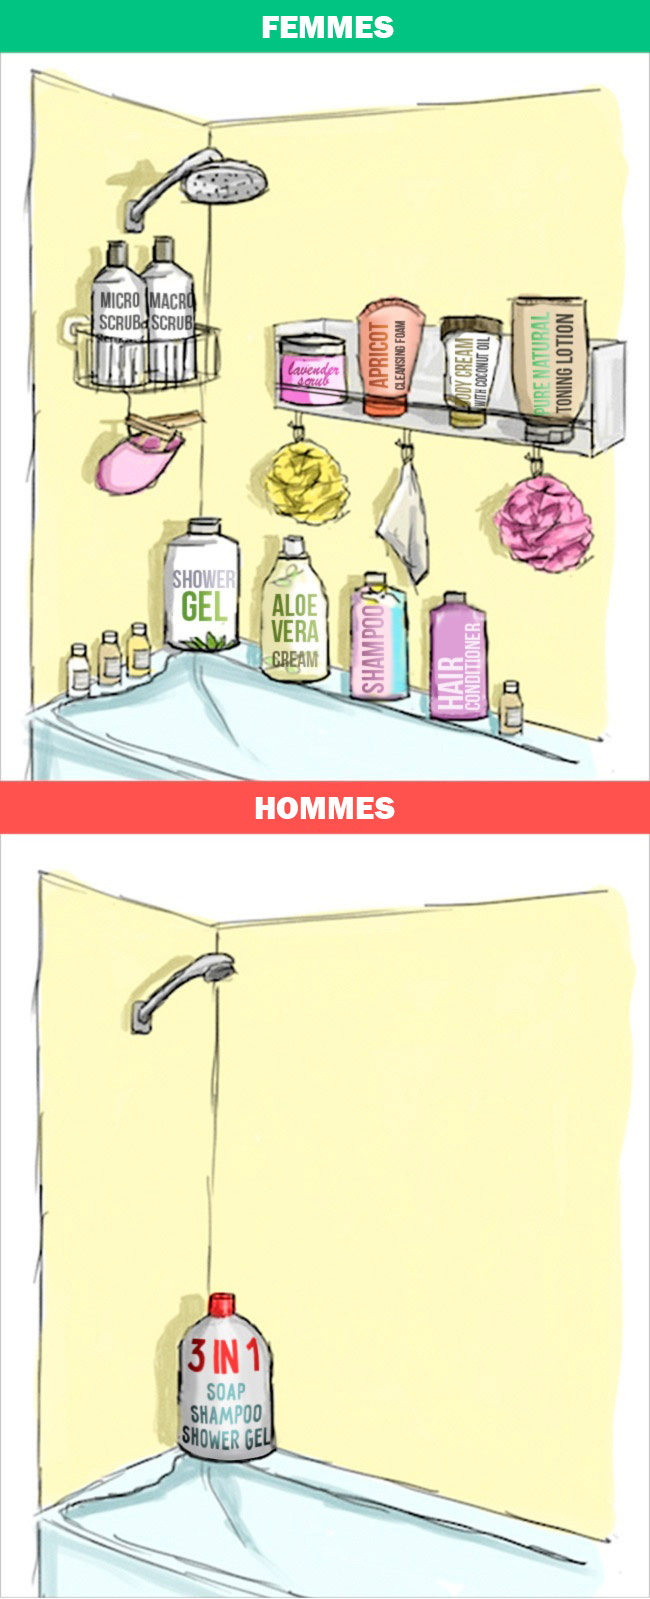 differences-hommes-femmes-05